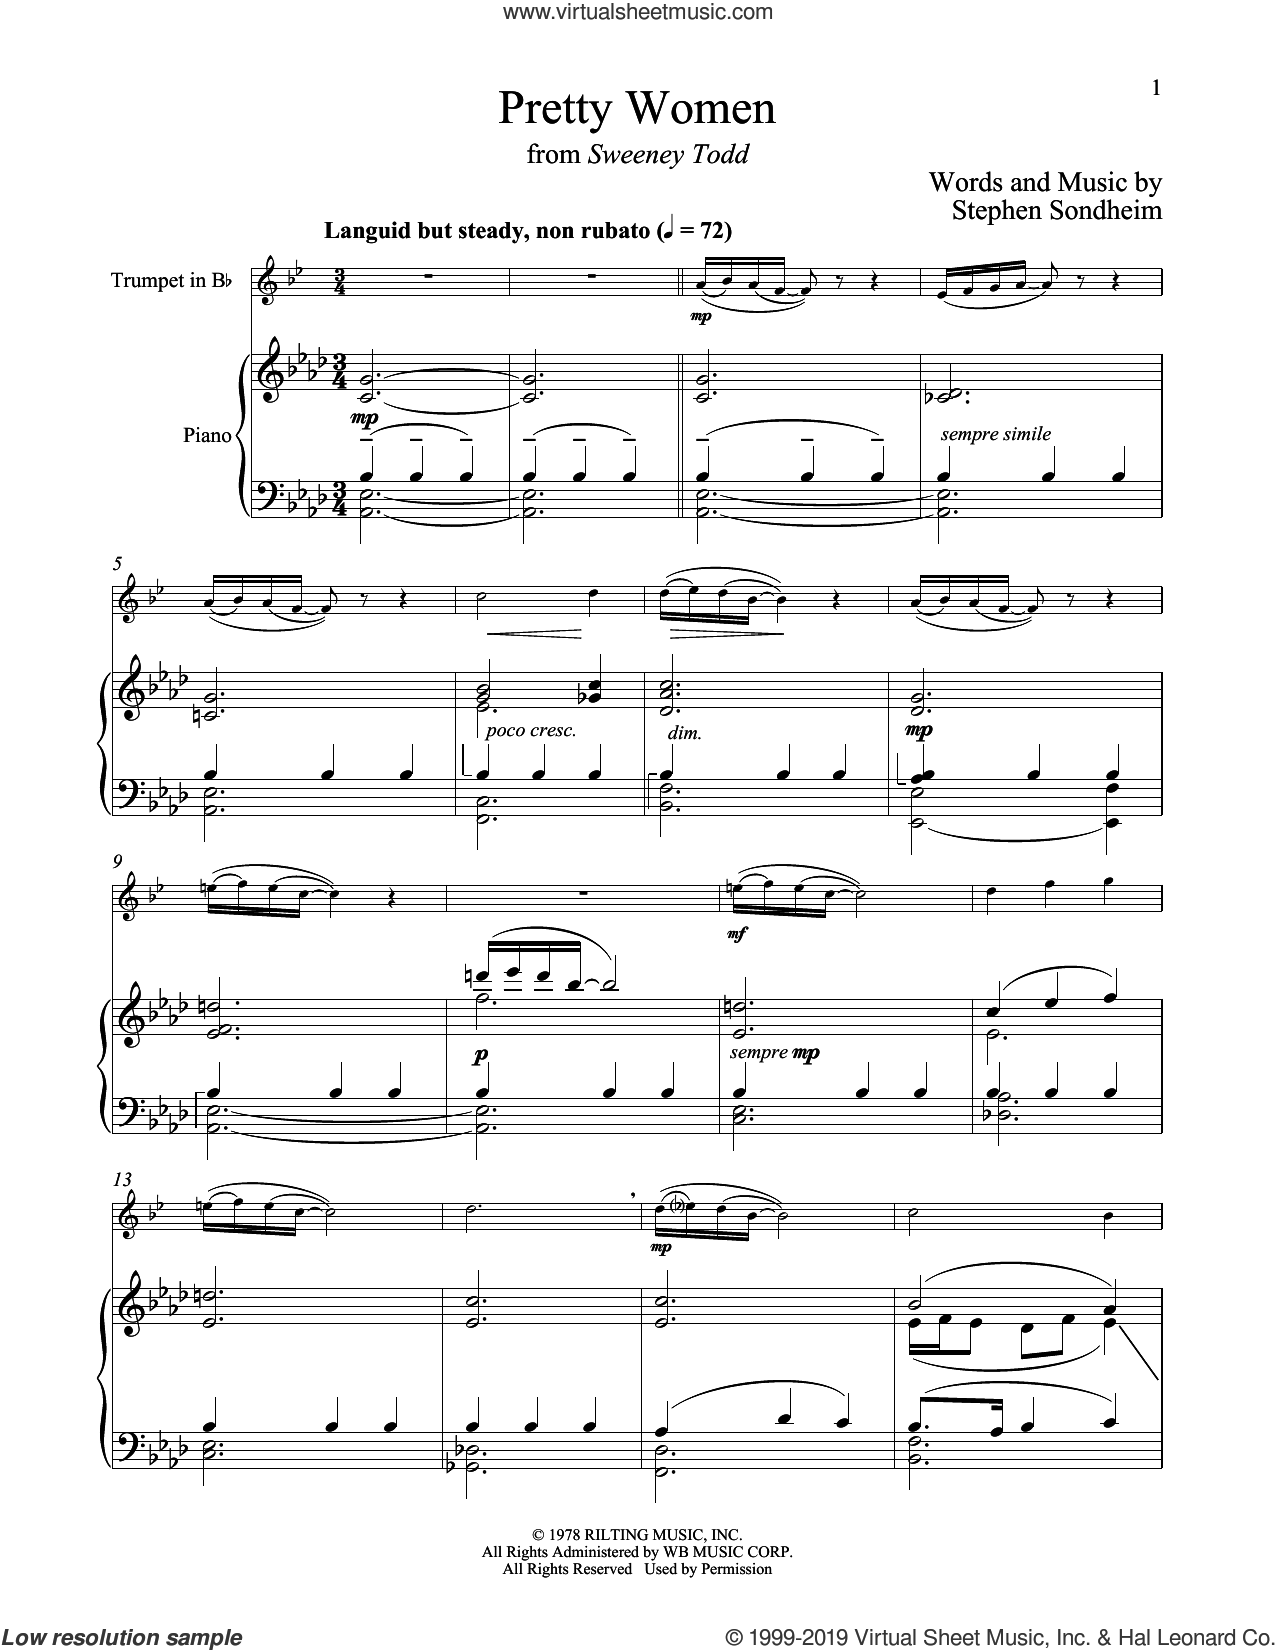 Pretty Women (from Sweeney Todd) sheet music for trumpet and piano by Stephen Sondheim, intermediate skill level